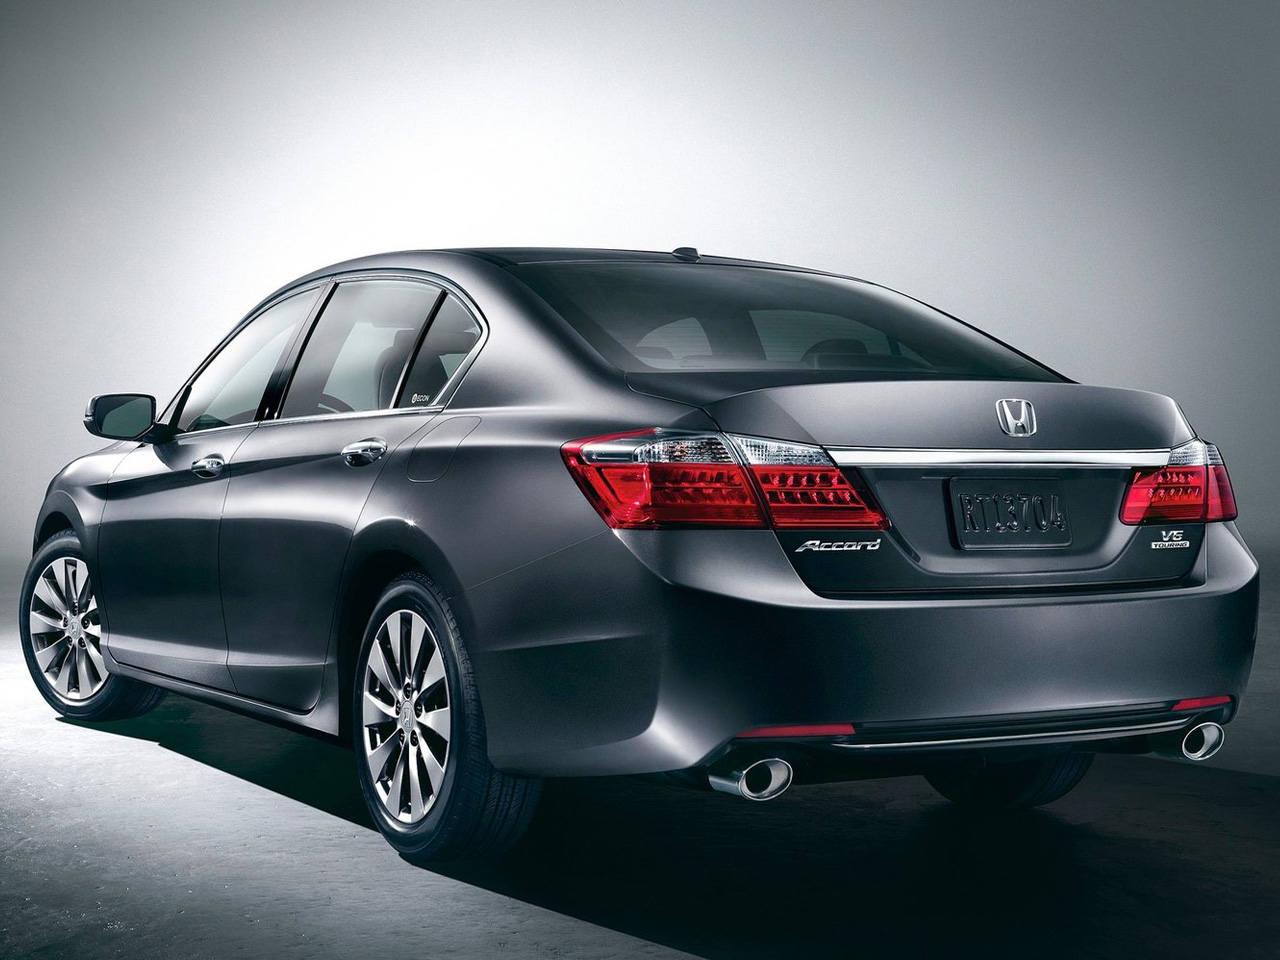 2013 honda accord sedan specs and price latest otomild. Black Bedroom Furniture Sets. Home Design Ideas